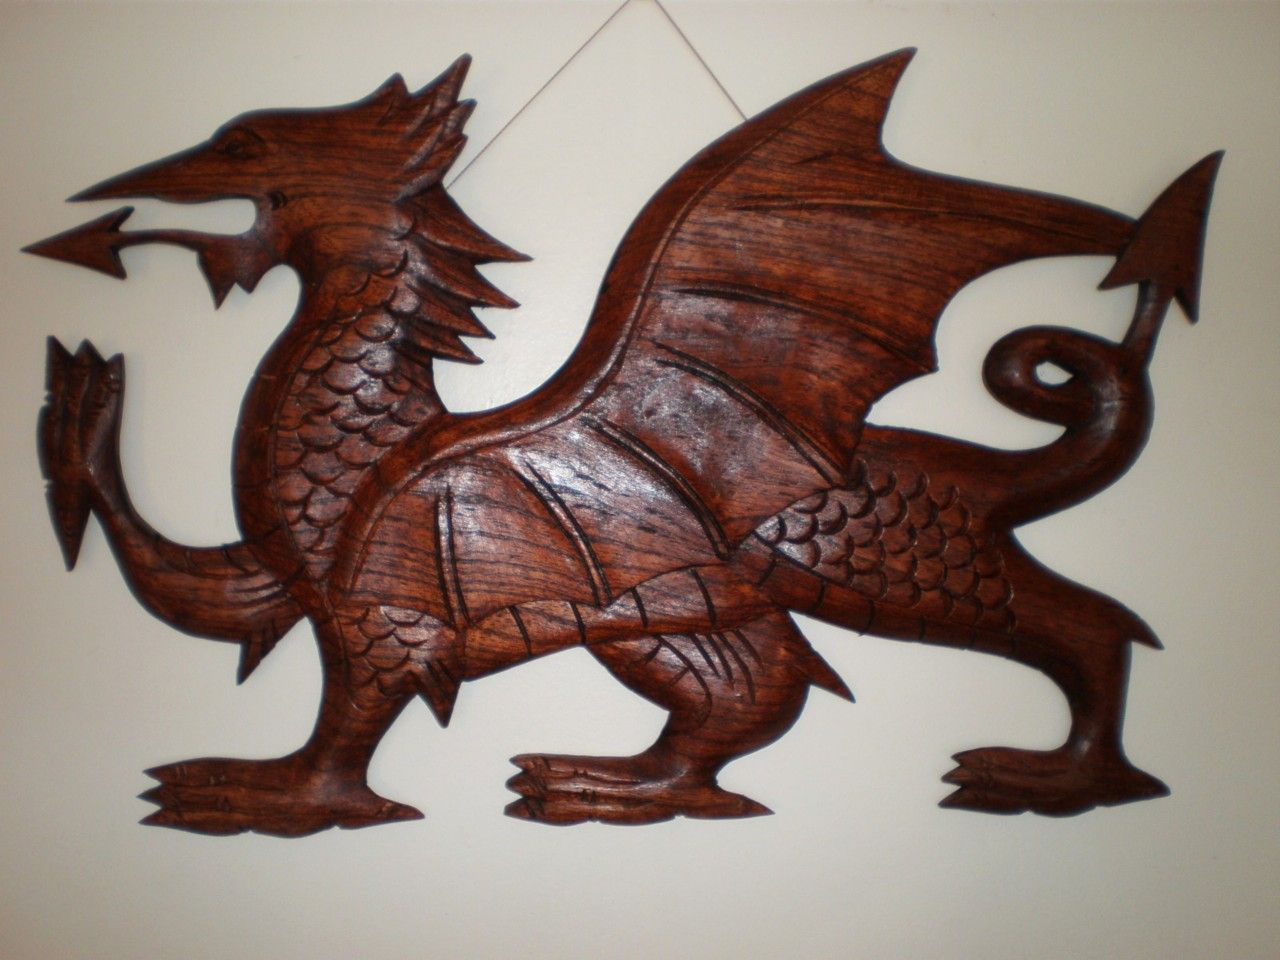 Medieval welsh dragon wall art decor hanging carving hand for Medieval decor